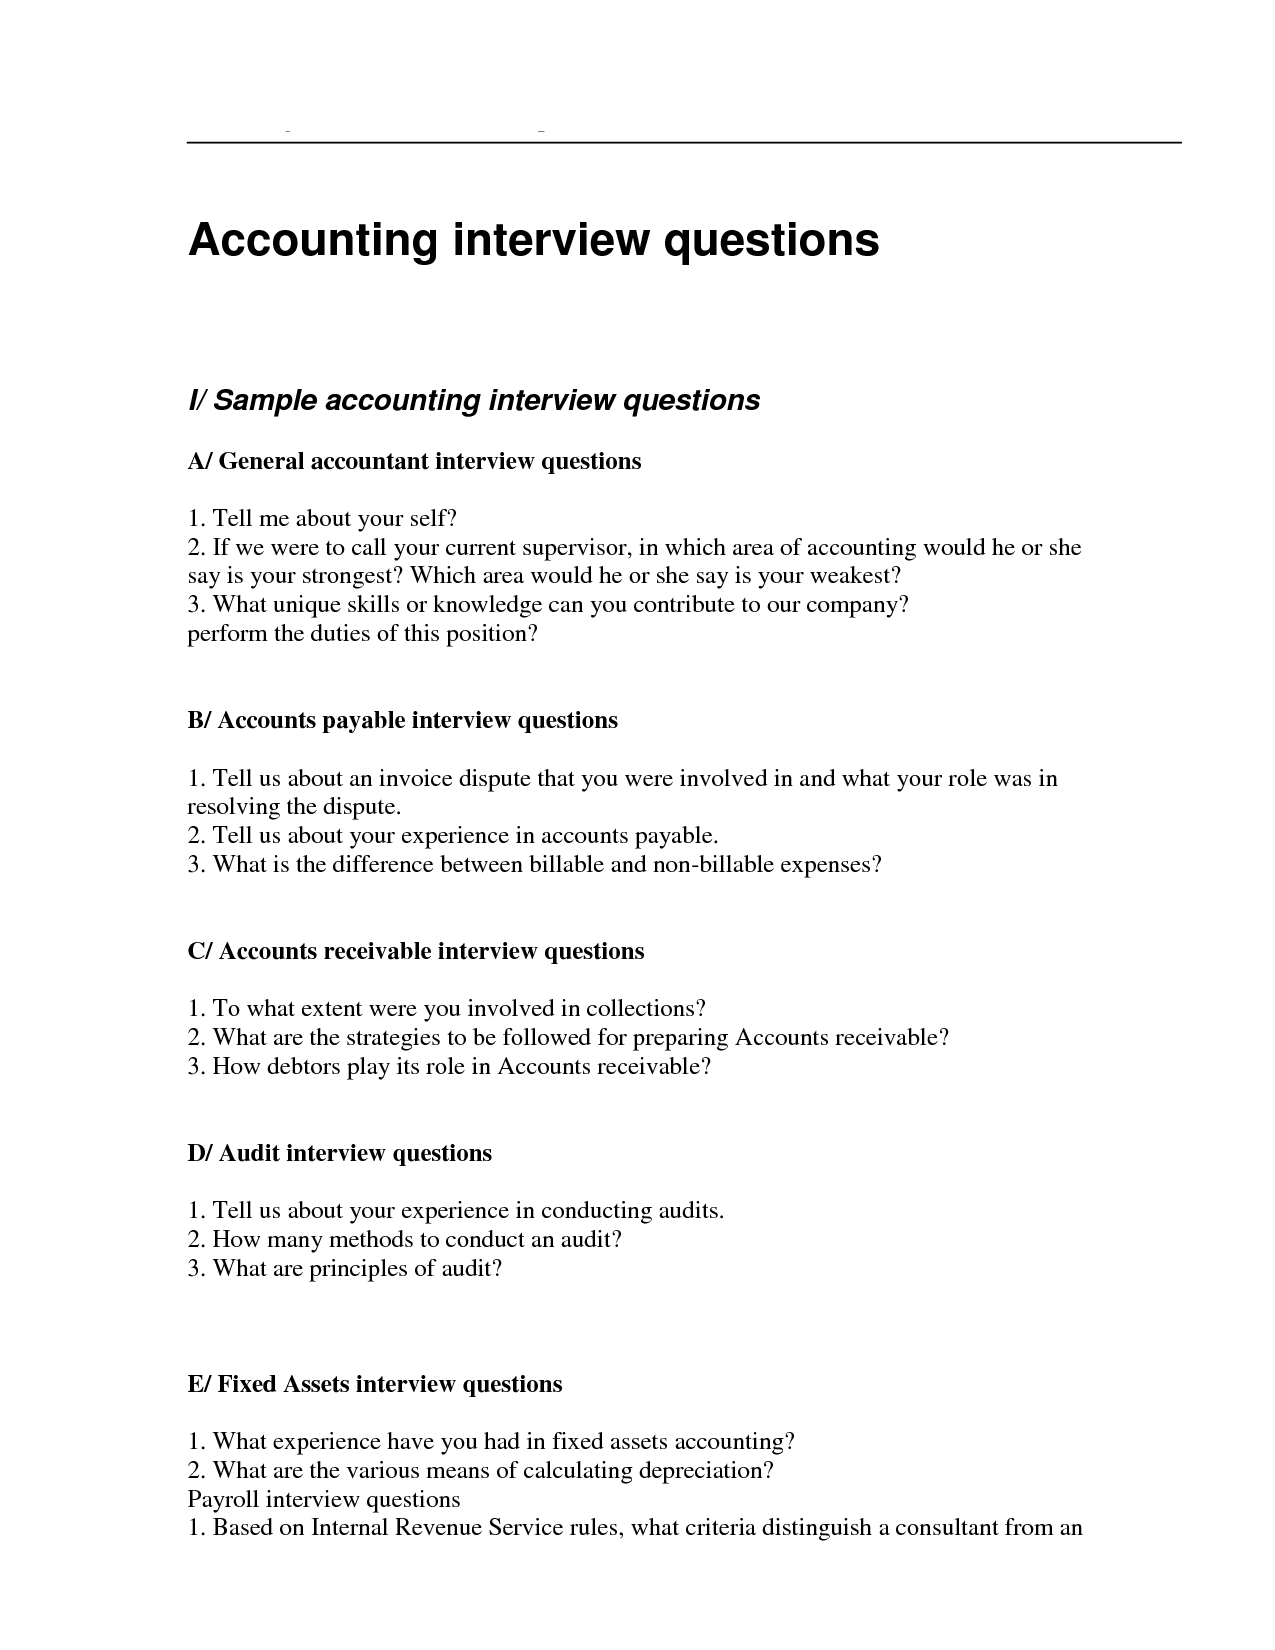 Accountant Interview Questionnaire Sample An Accountant Interview